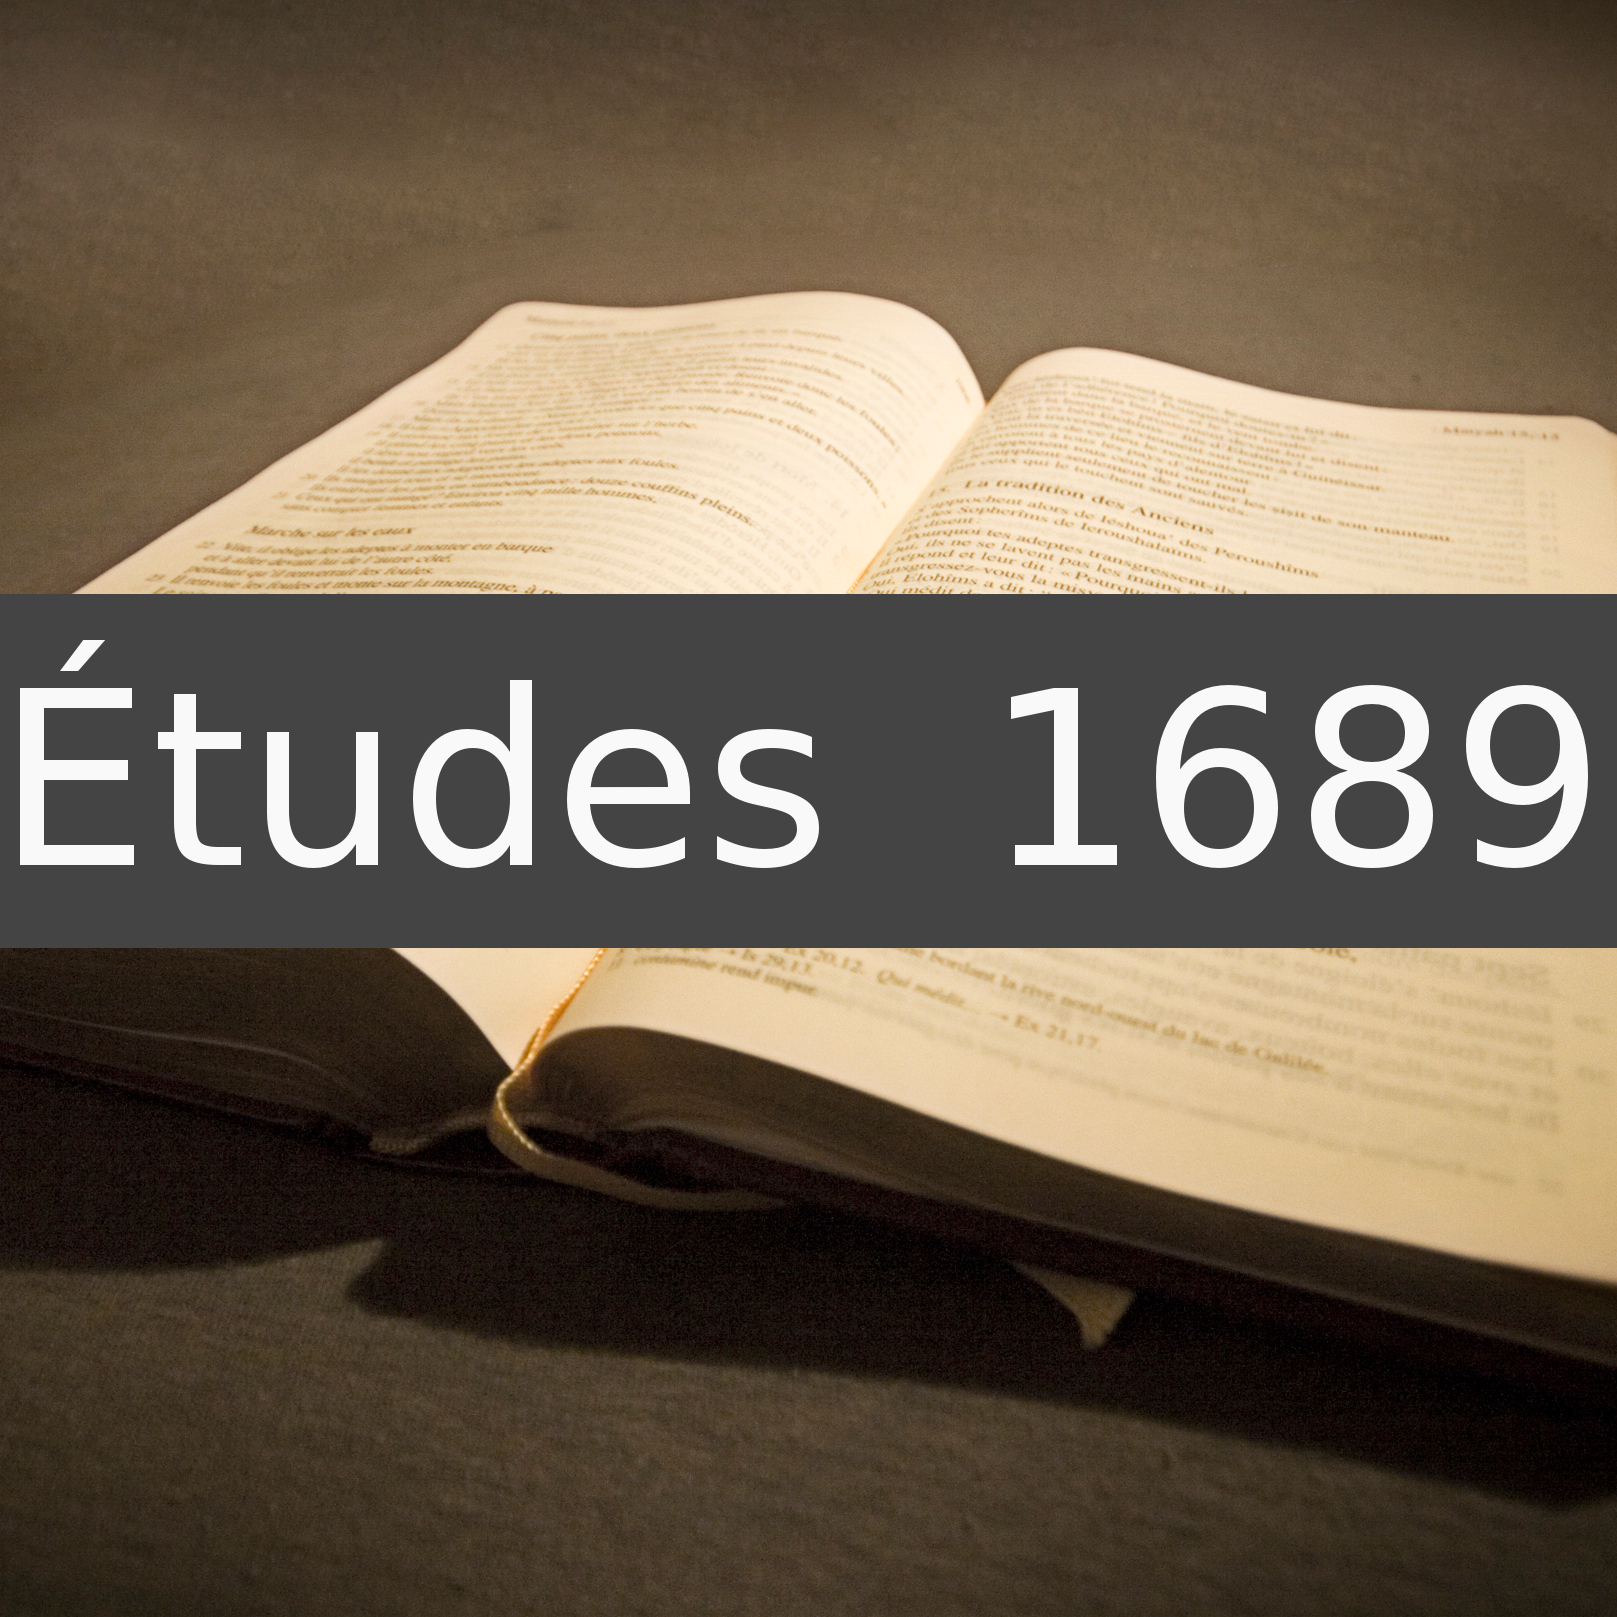 etudes-1689 (podcast)